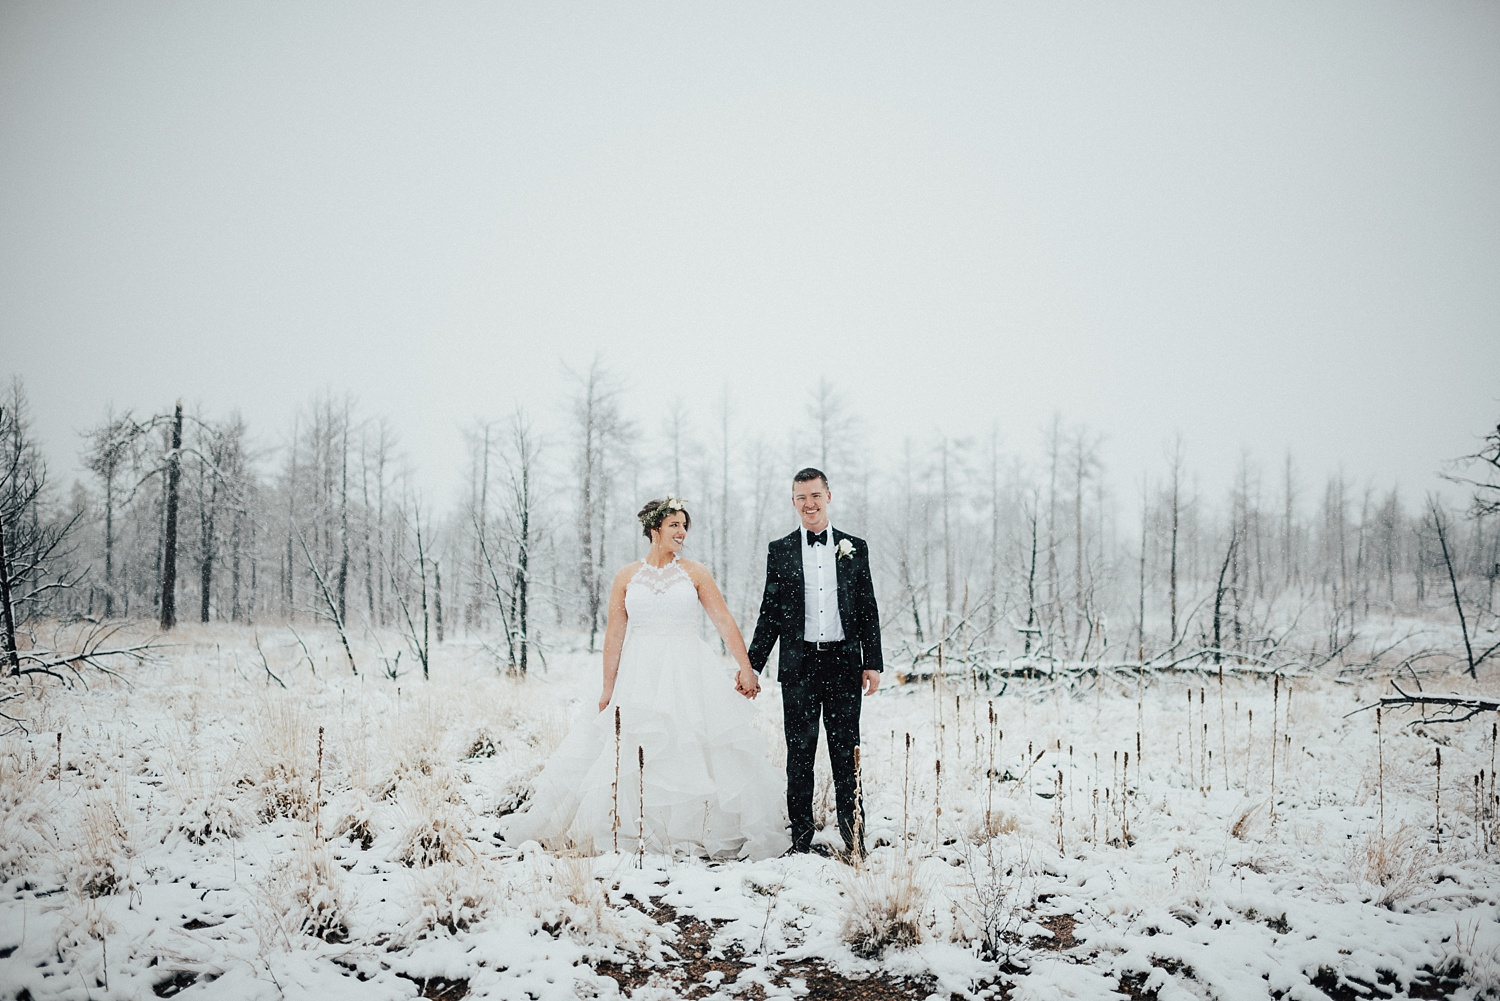 Nate_shepard_photography_engagement_wedding_photographer_denver_colorado_0225.jpg